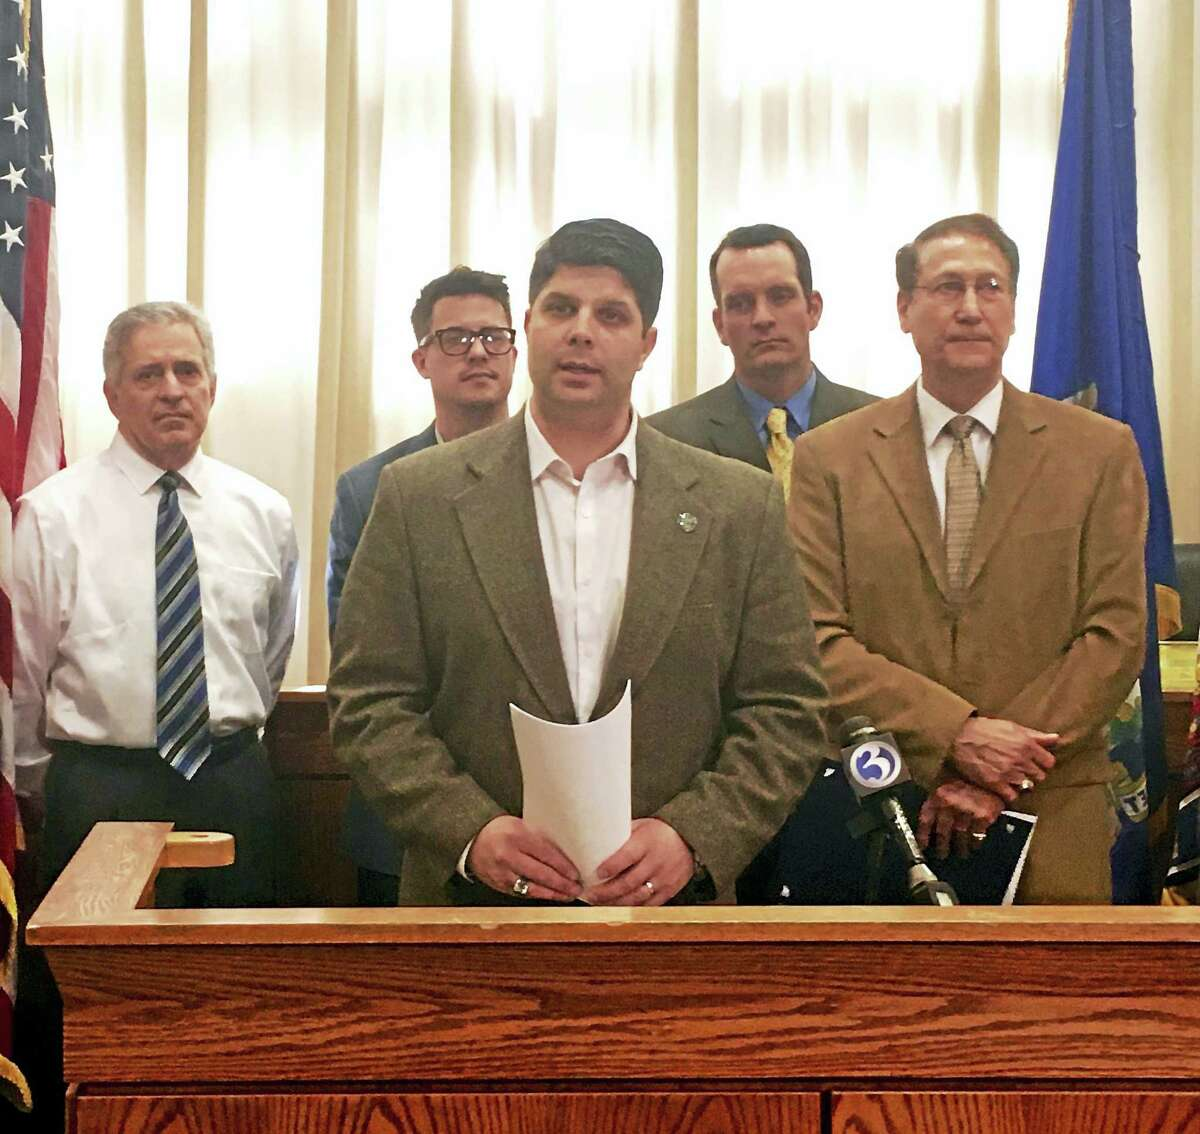 Last year, Middletown Mayor Dan Drew announced that Standard & Poor's Rating Services awarded the city a AAA bond rating, the highest possible designation a city can receive. S&P reaffirmed the rating again last week. In this file photo, Drew is shown with Common Council Minority Leader Sebastian Giuliano, Councilman Robert Blanchard, the city's financial adviser Matt Spoerndle and Majority Leader Thomas Serra.